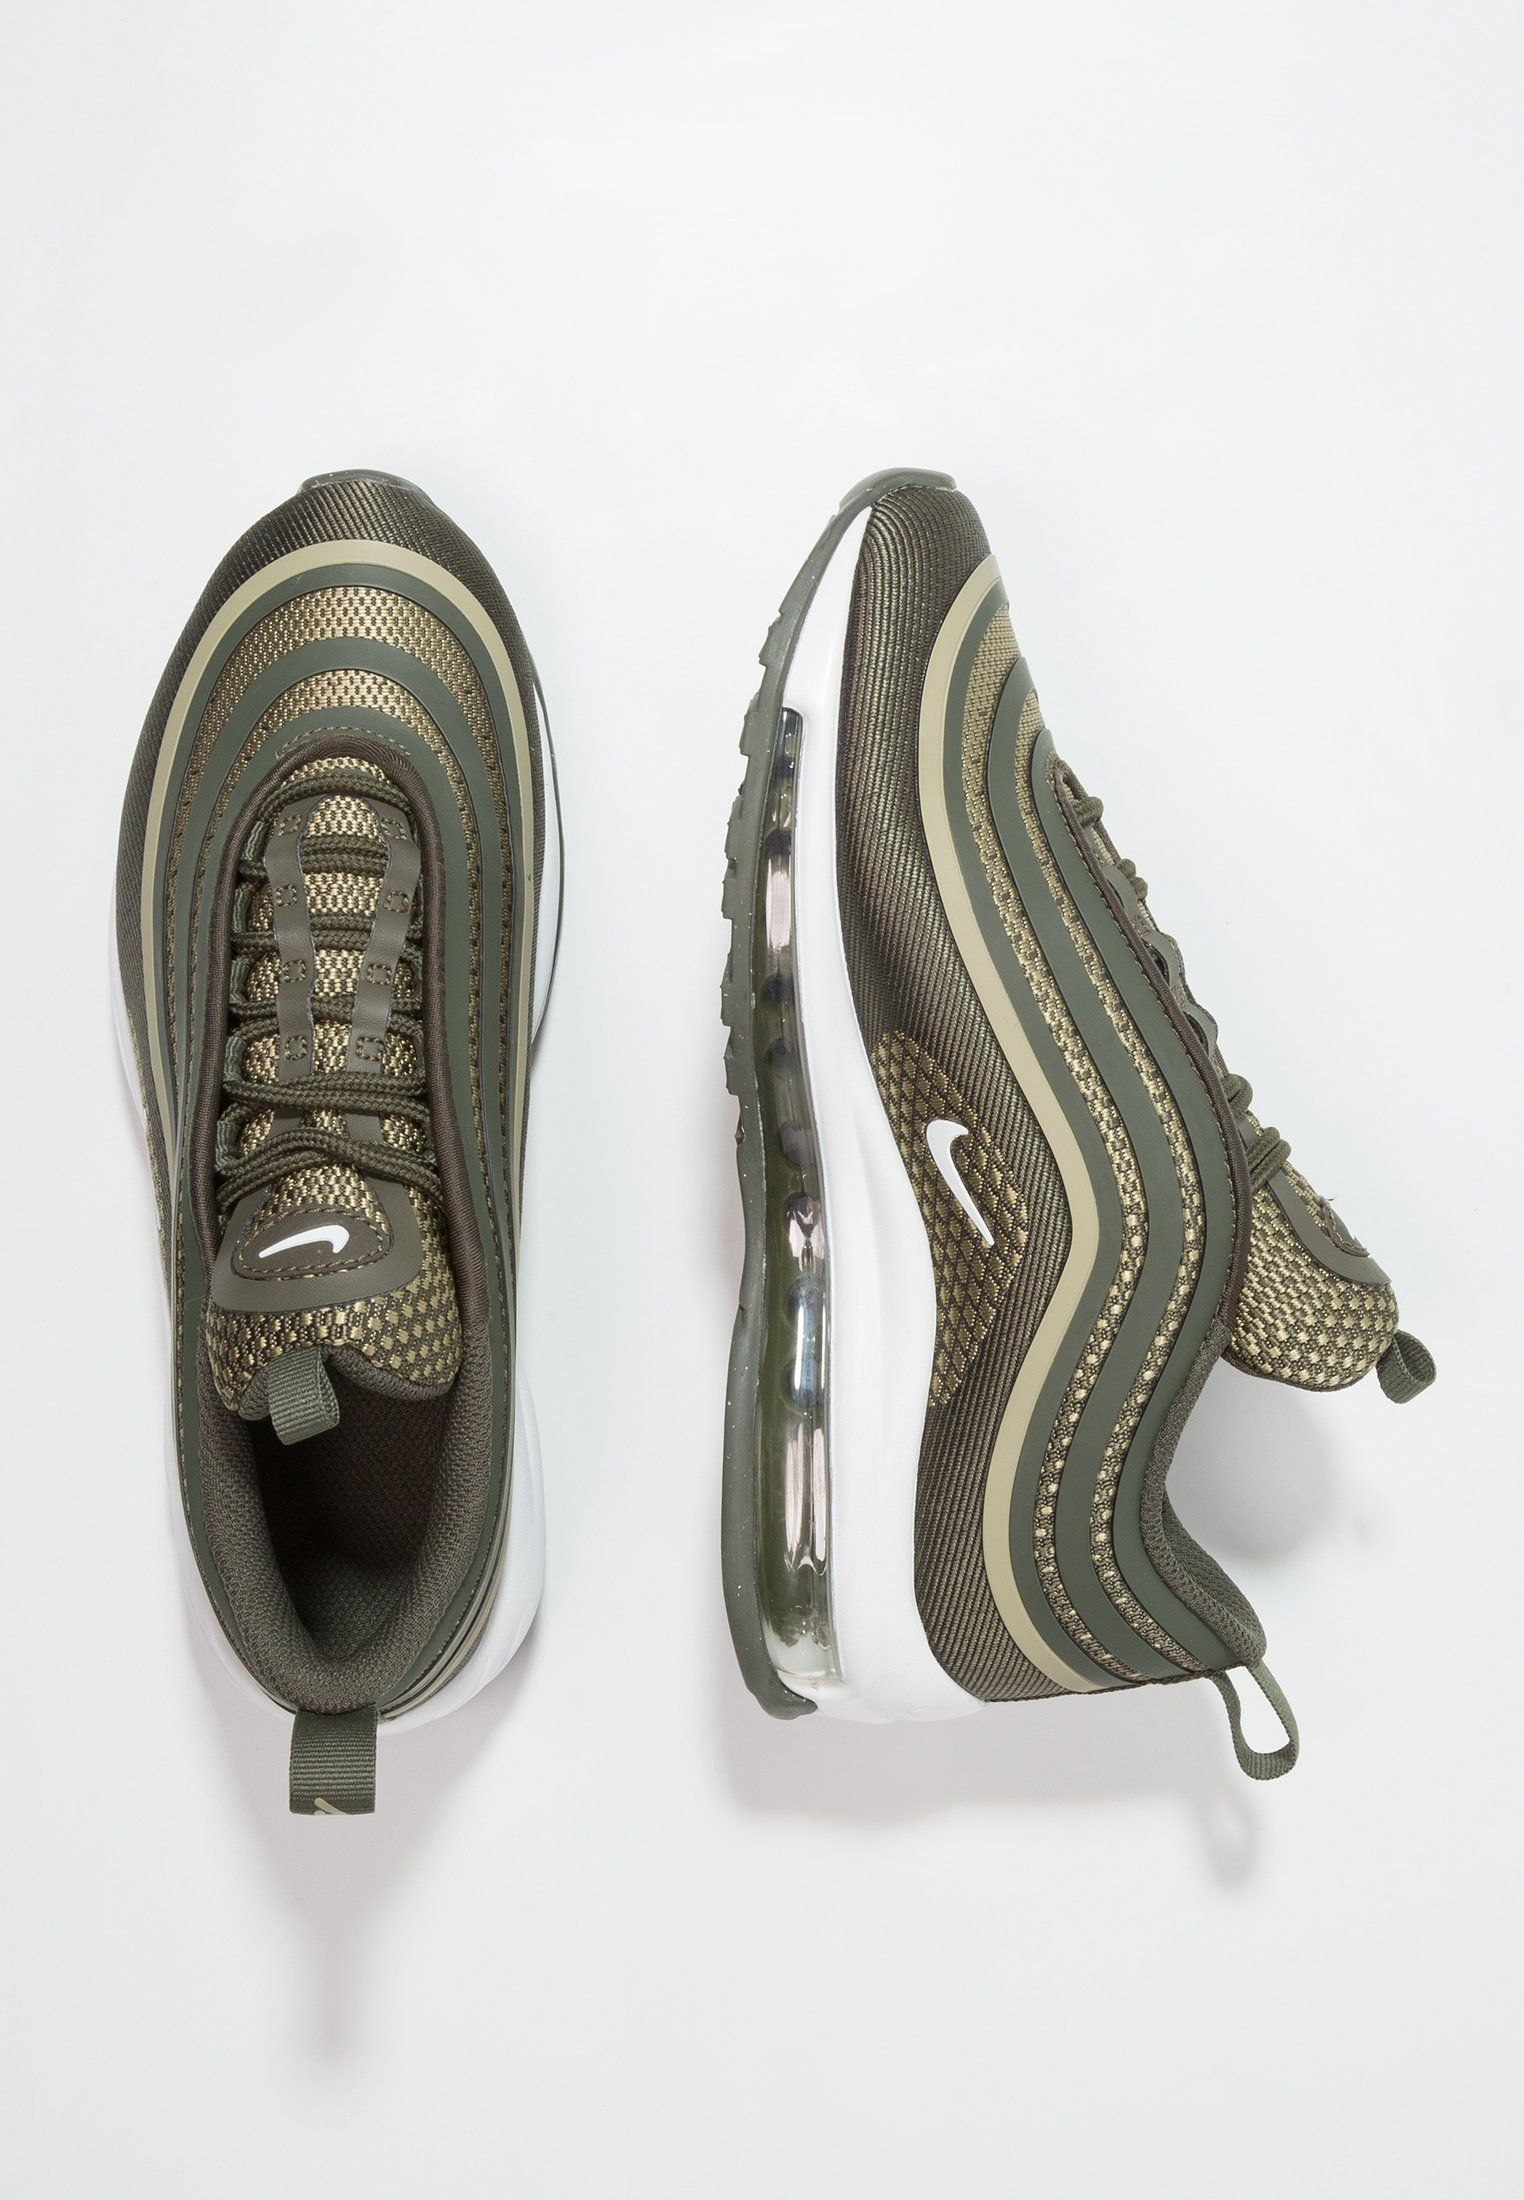 Official Images Of The Nike Air Max 97 Ultra 17 Cargo Khaki